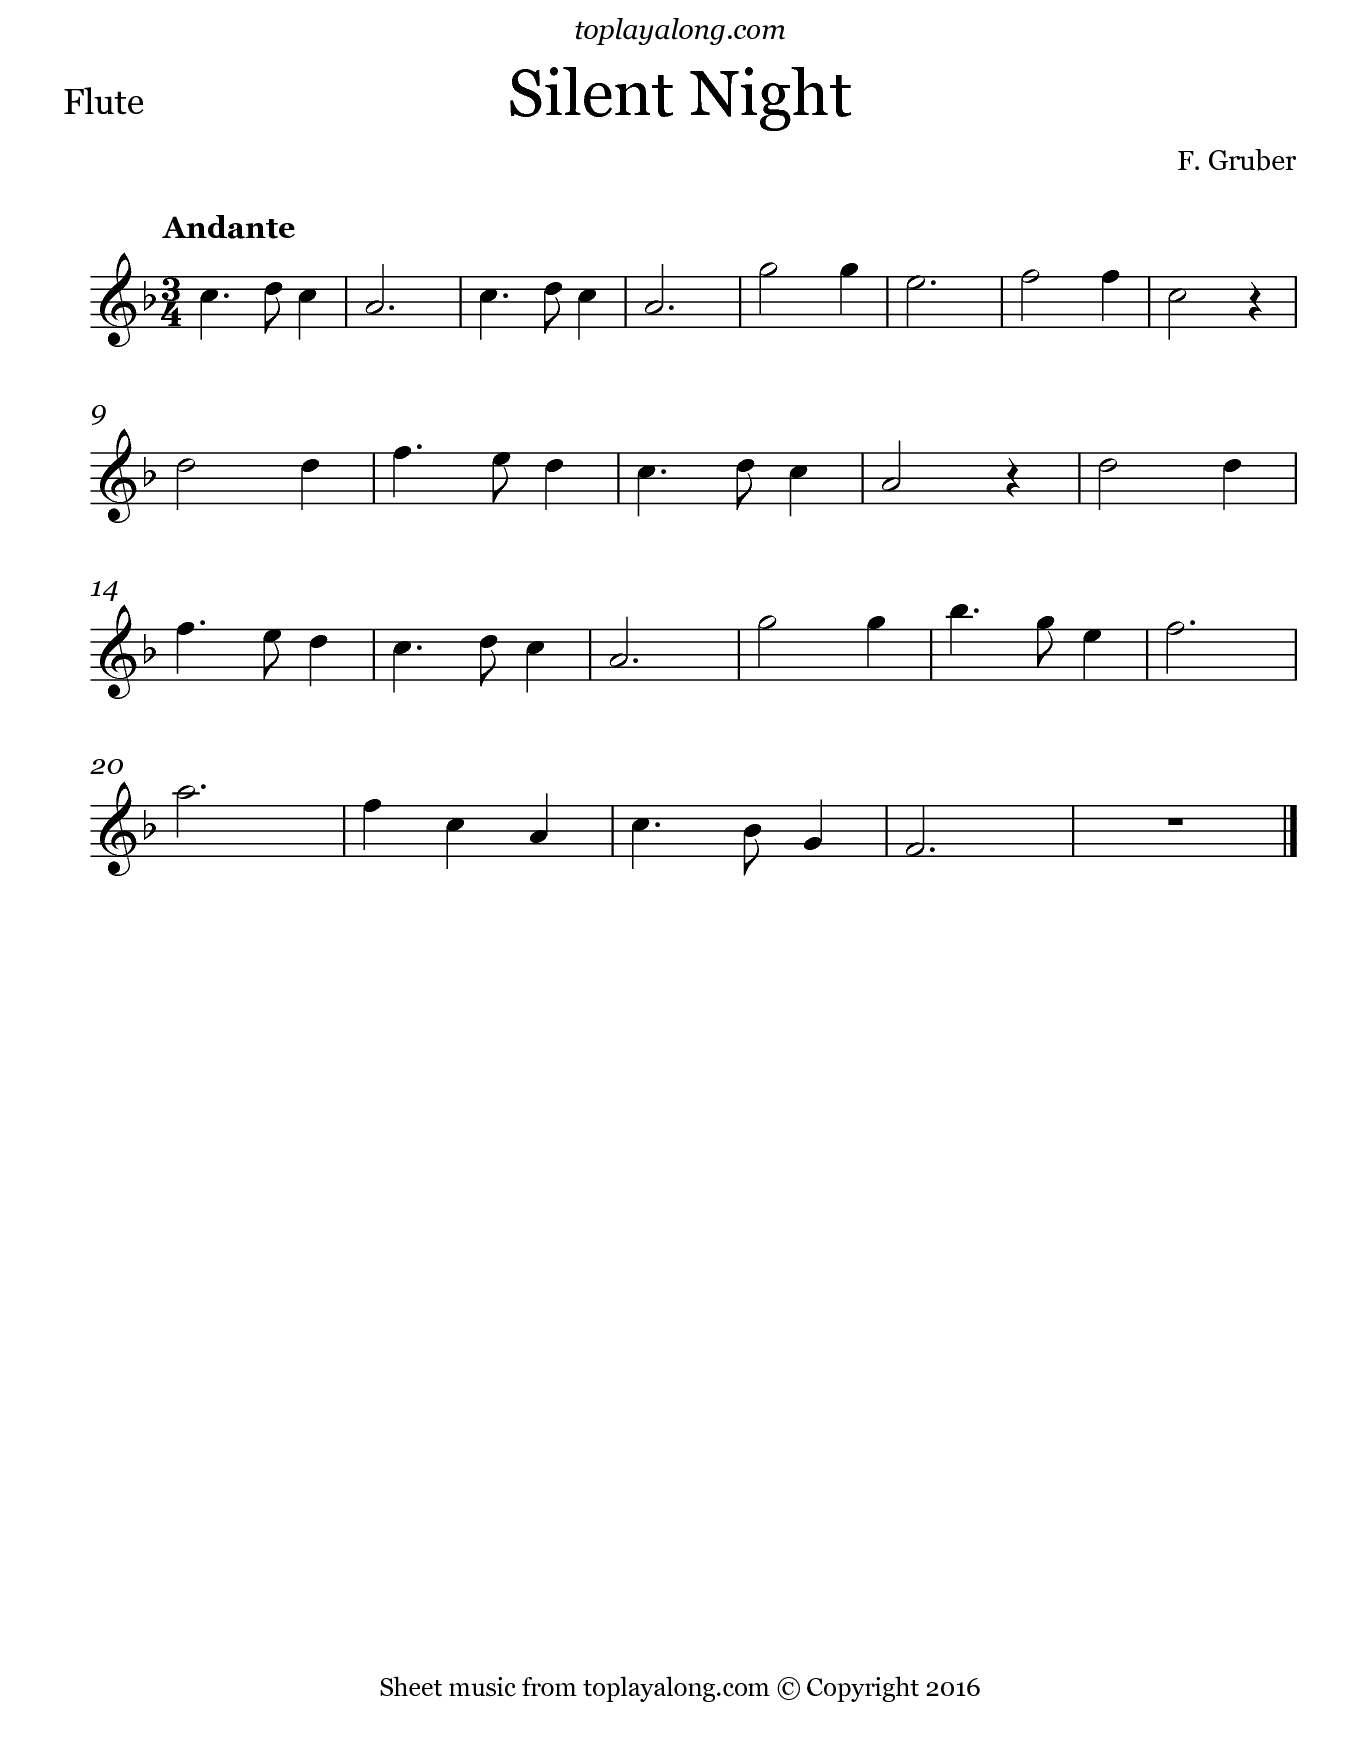 Silent Night by Gruber. Sheet music for Flute, page 1.